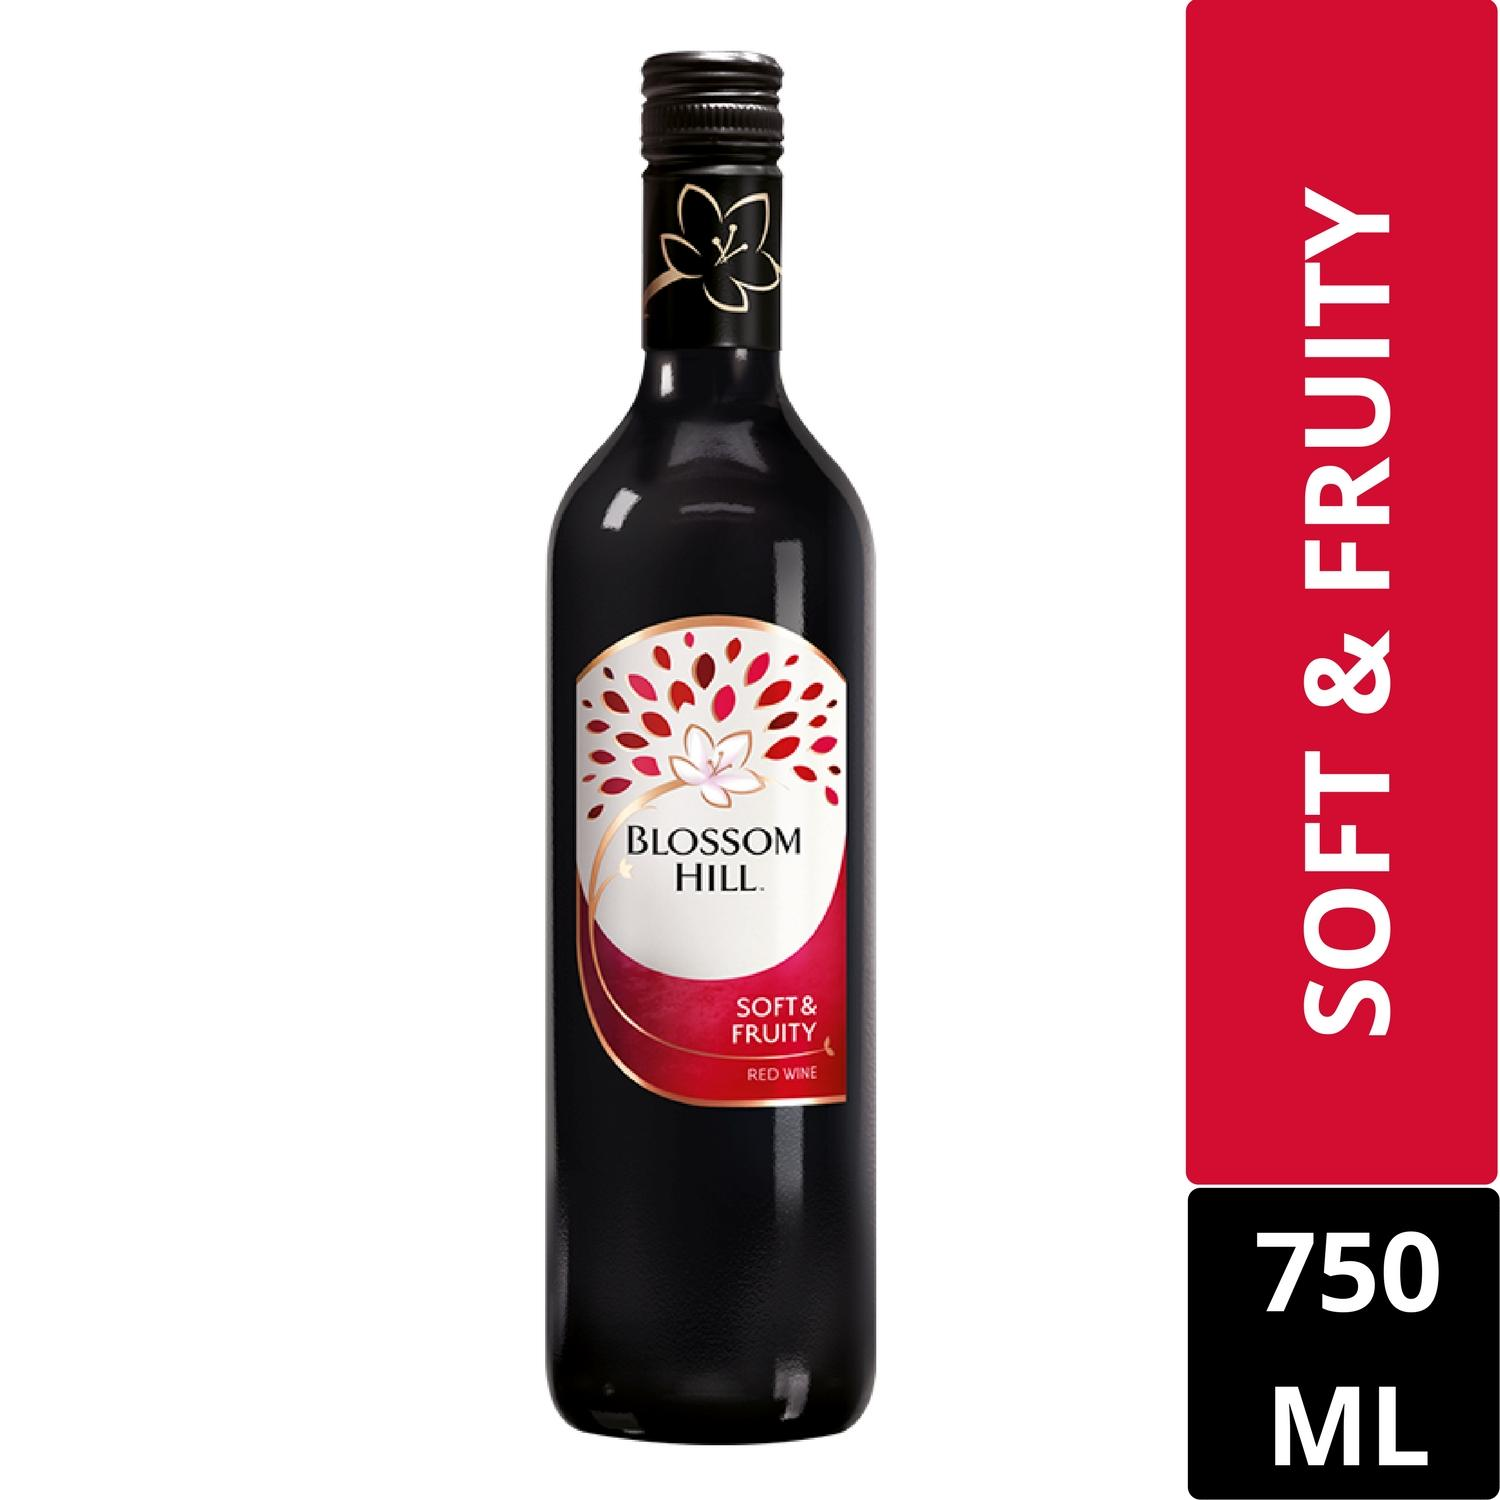 How Do I Get Blossom Hill Soft Fruity Red Wine 750Ml